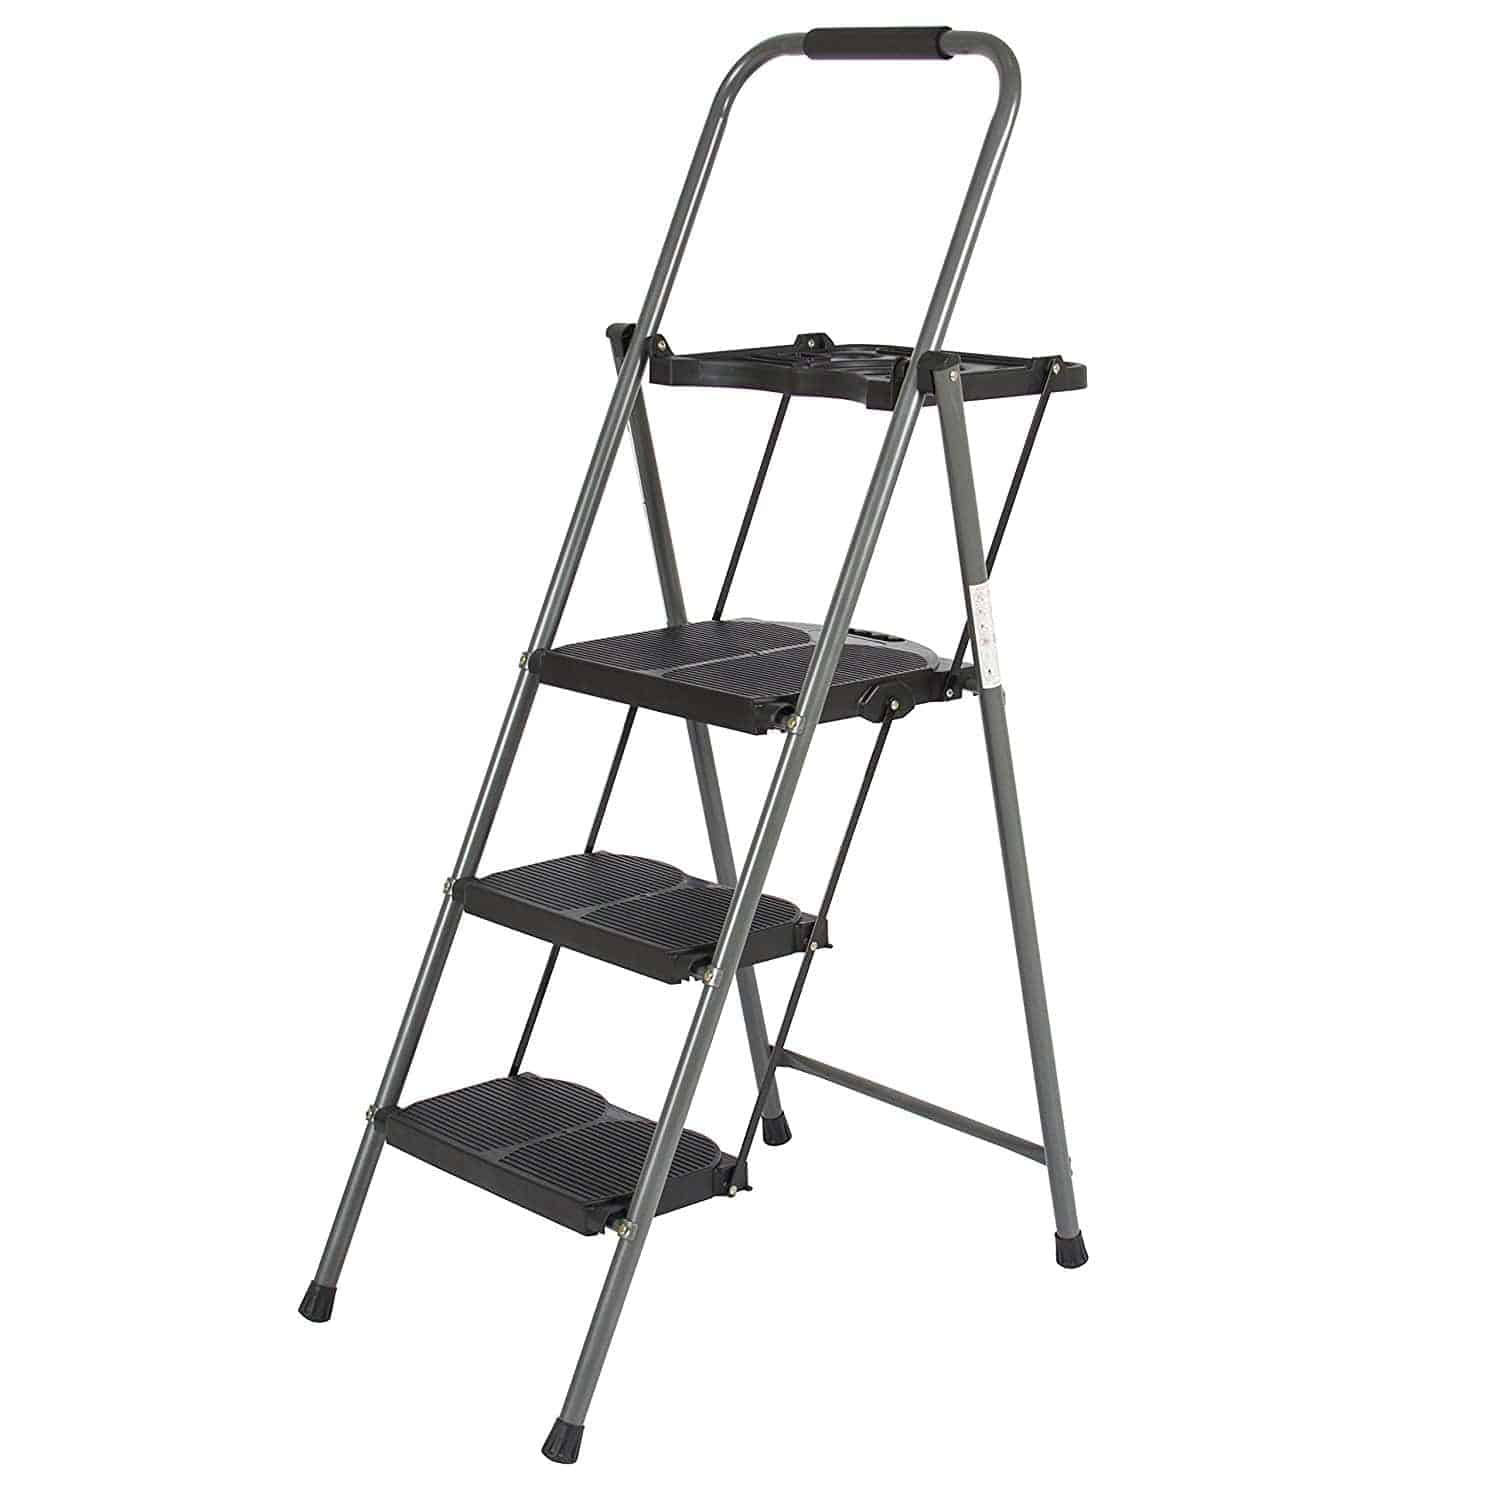 3 step ladder platform folding stool with anti-skid rubber feet and a foldable design.